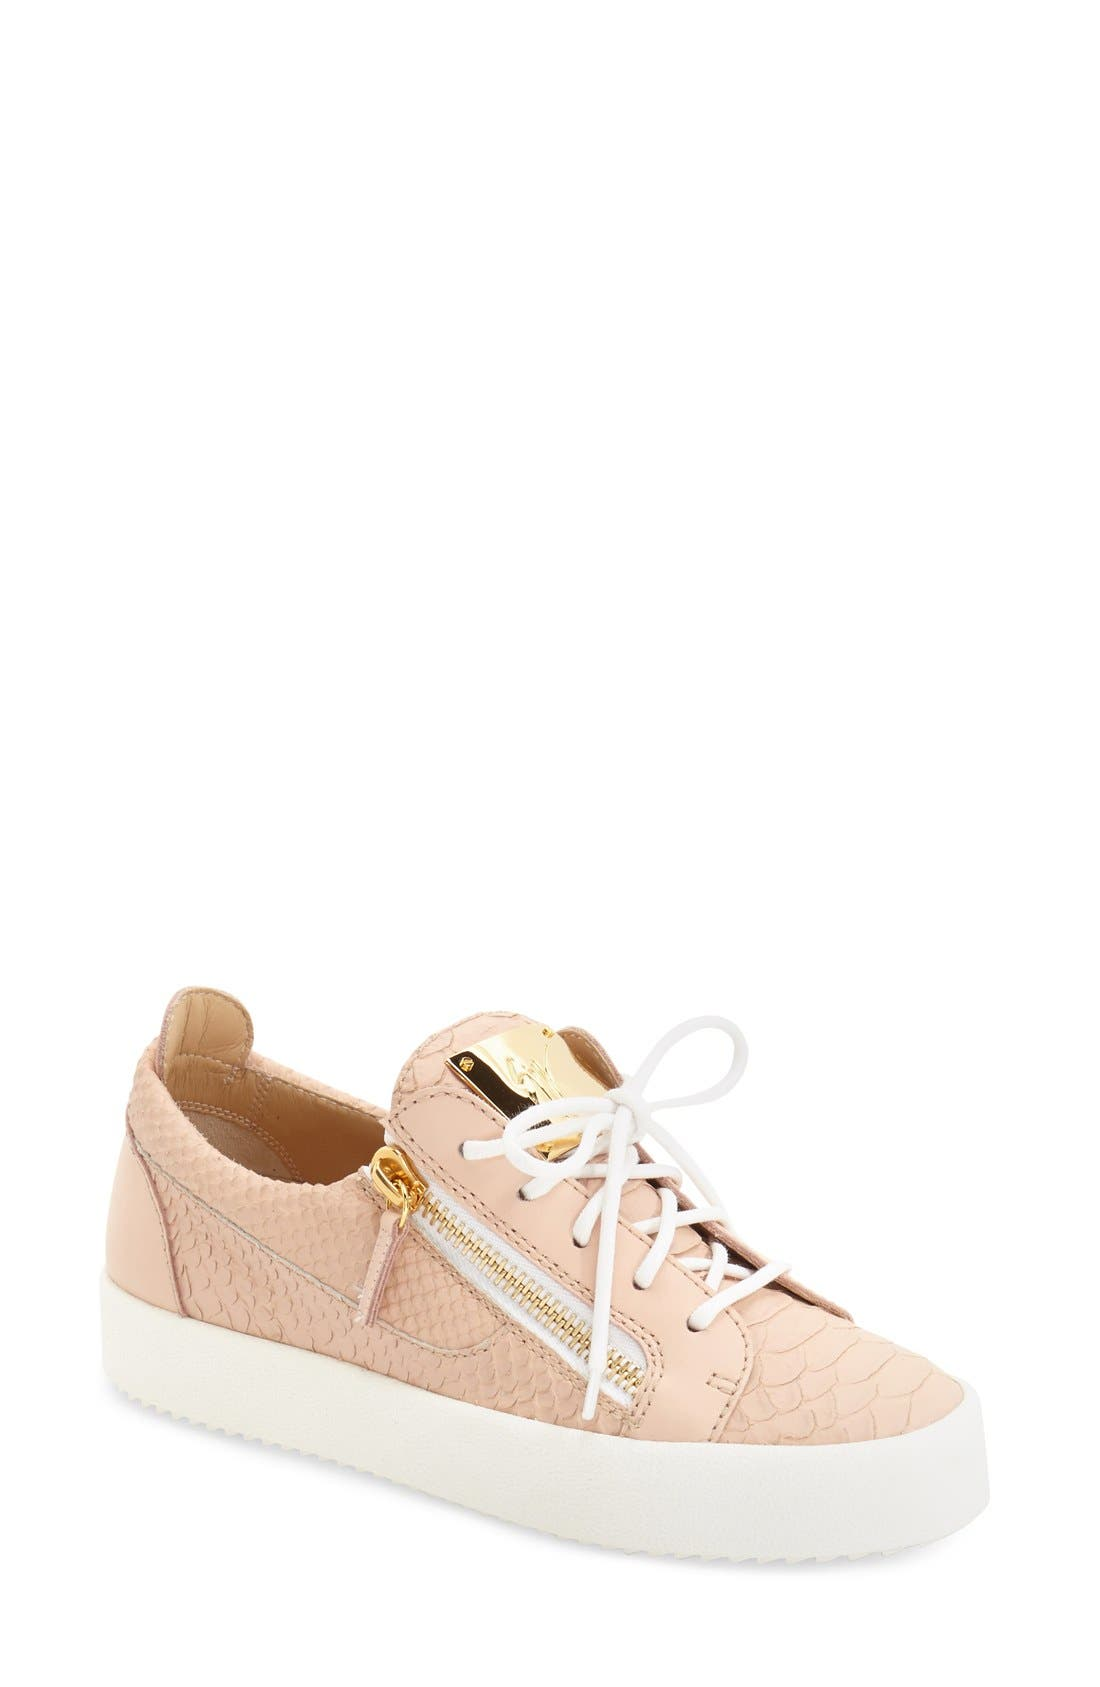 'May London' Snake Embossed Low Top Sneaker,                         Main,                         color, Nude Leather